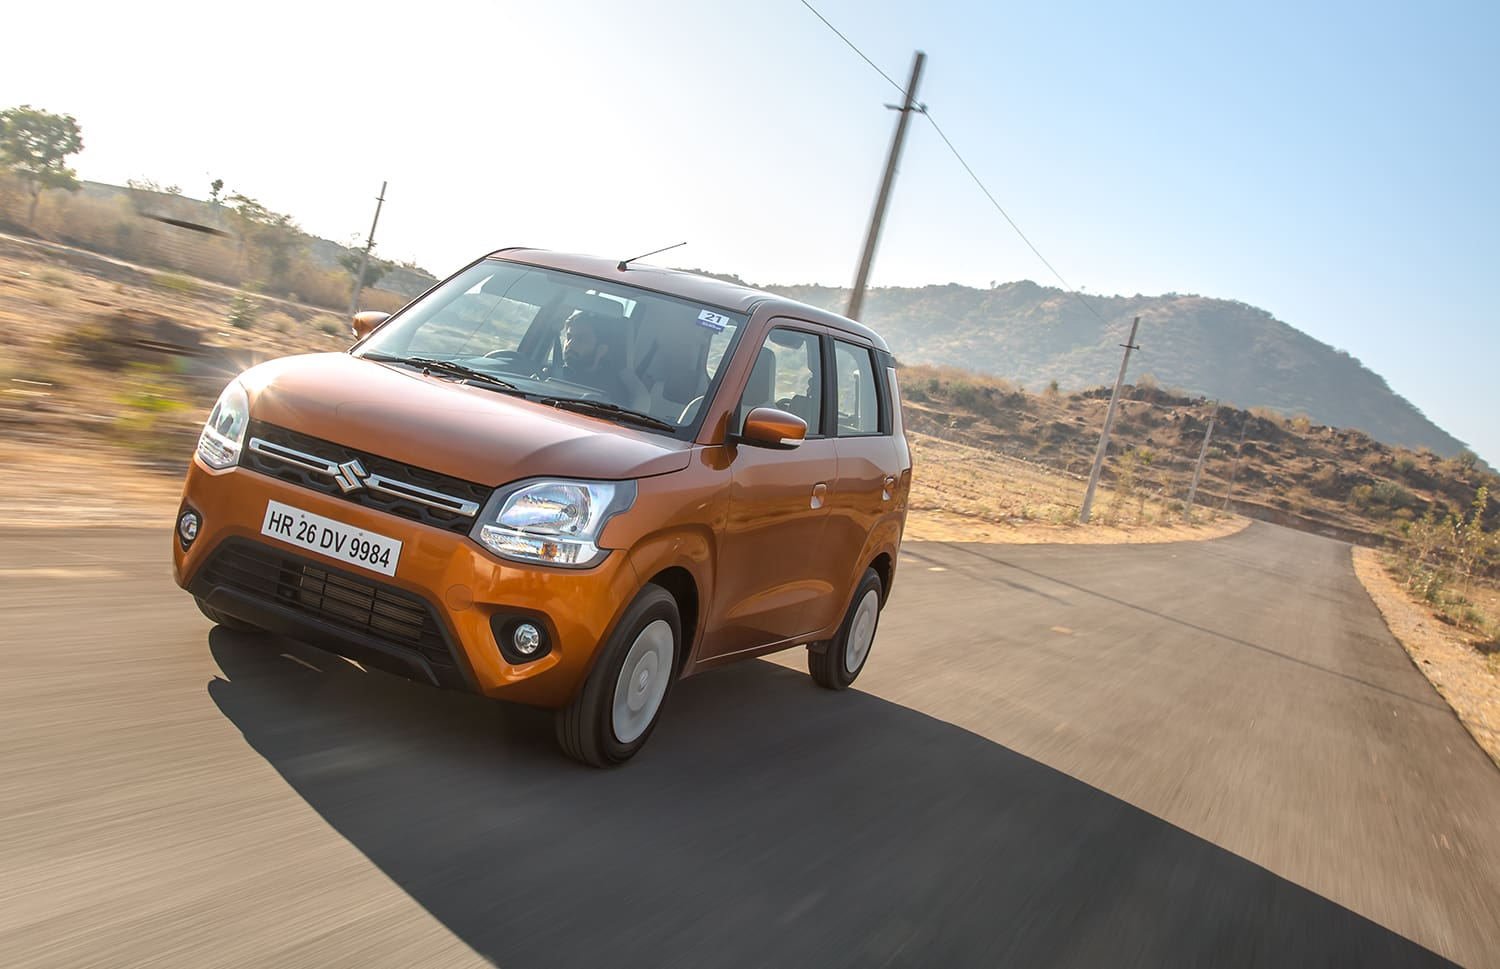 2019 Maruti Wagonr S Cng Launched In India Price Starts At Rs 4 84